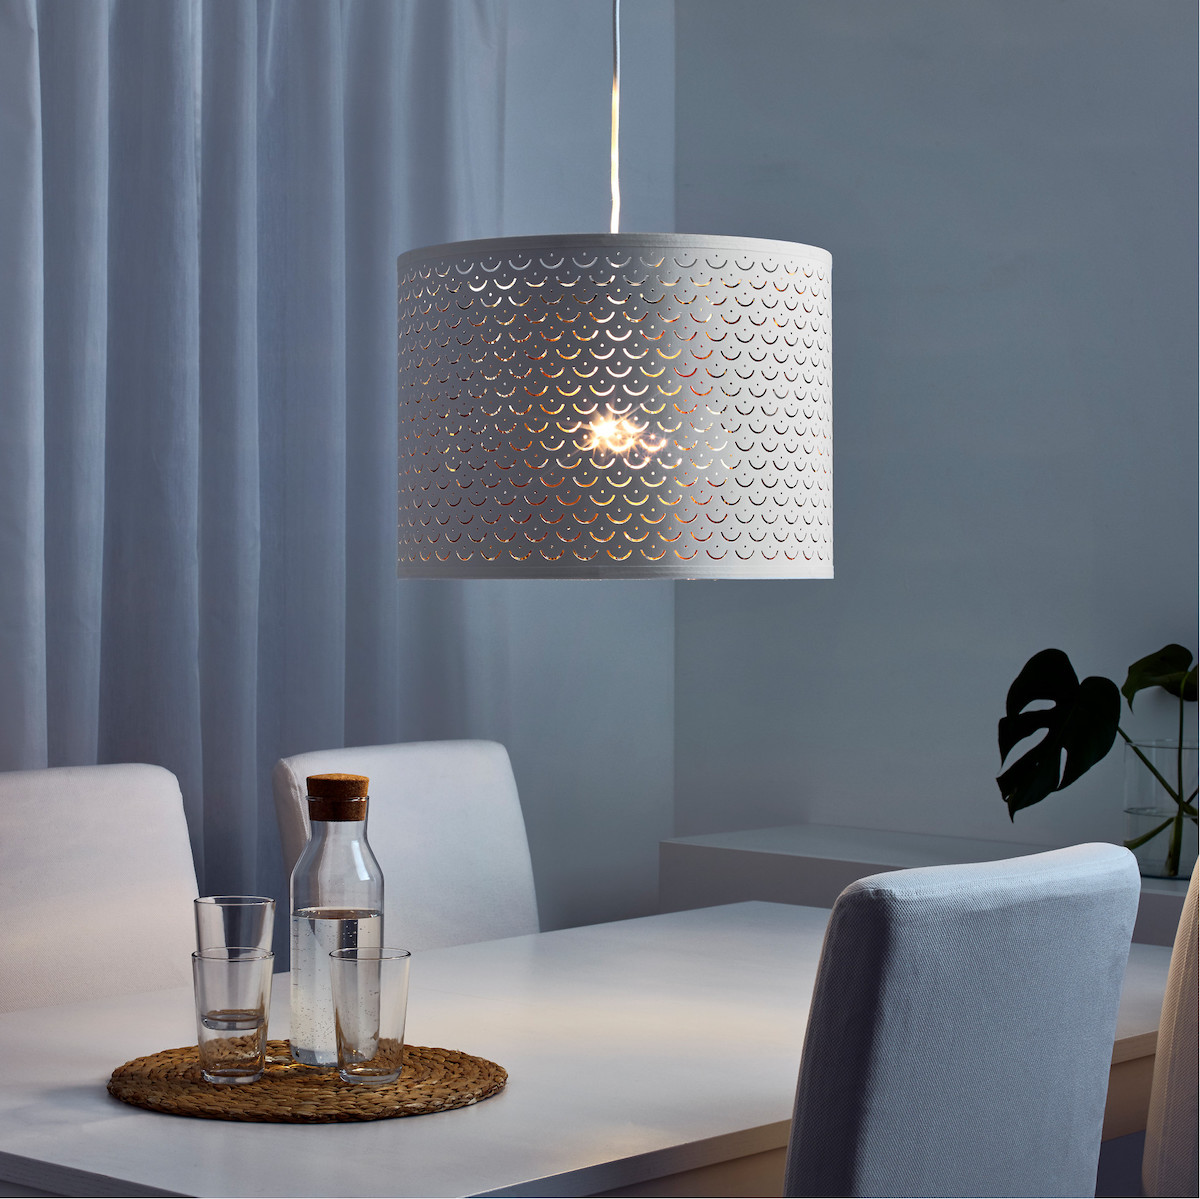 IKEA NYMÖ Lamp Shade Review